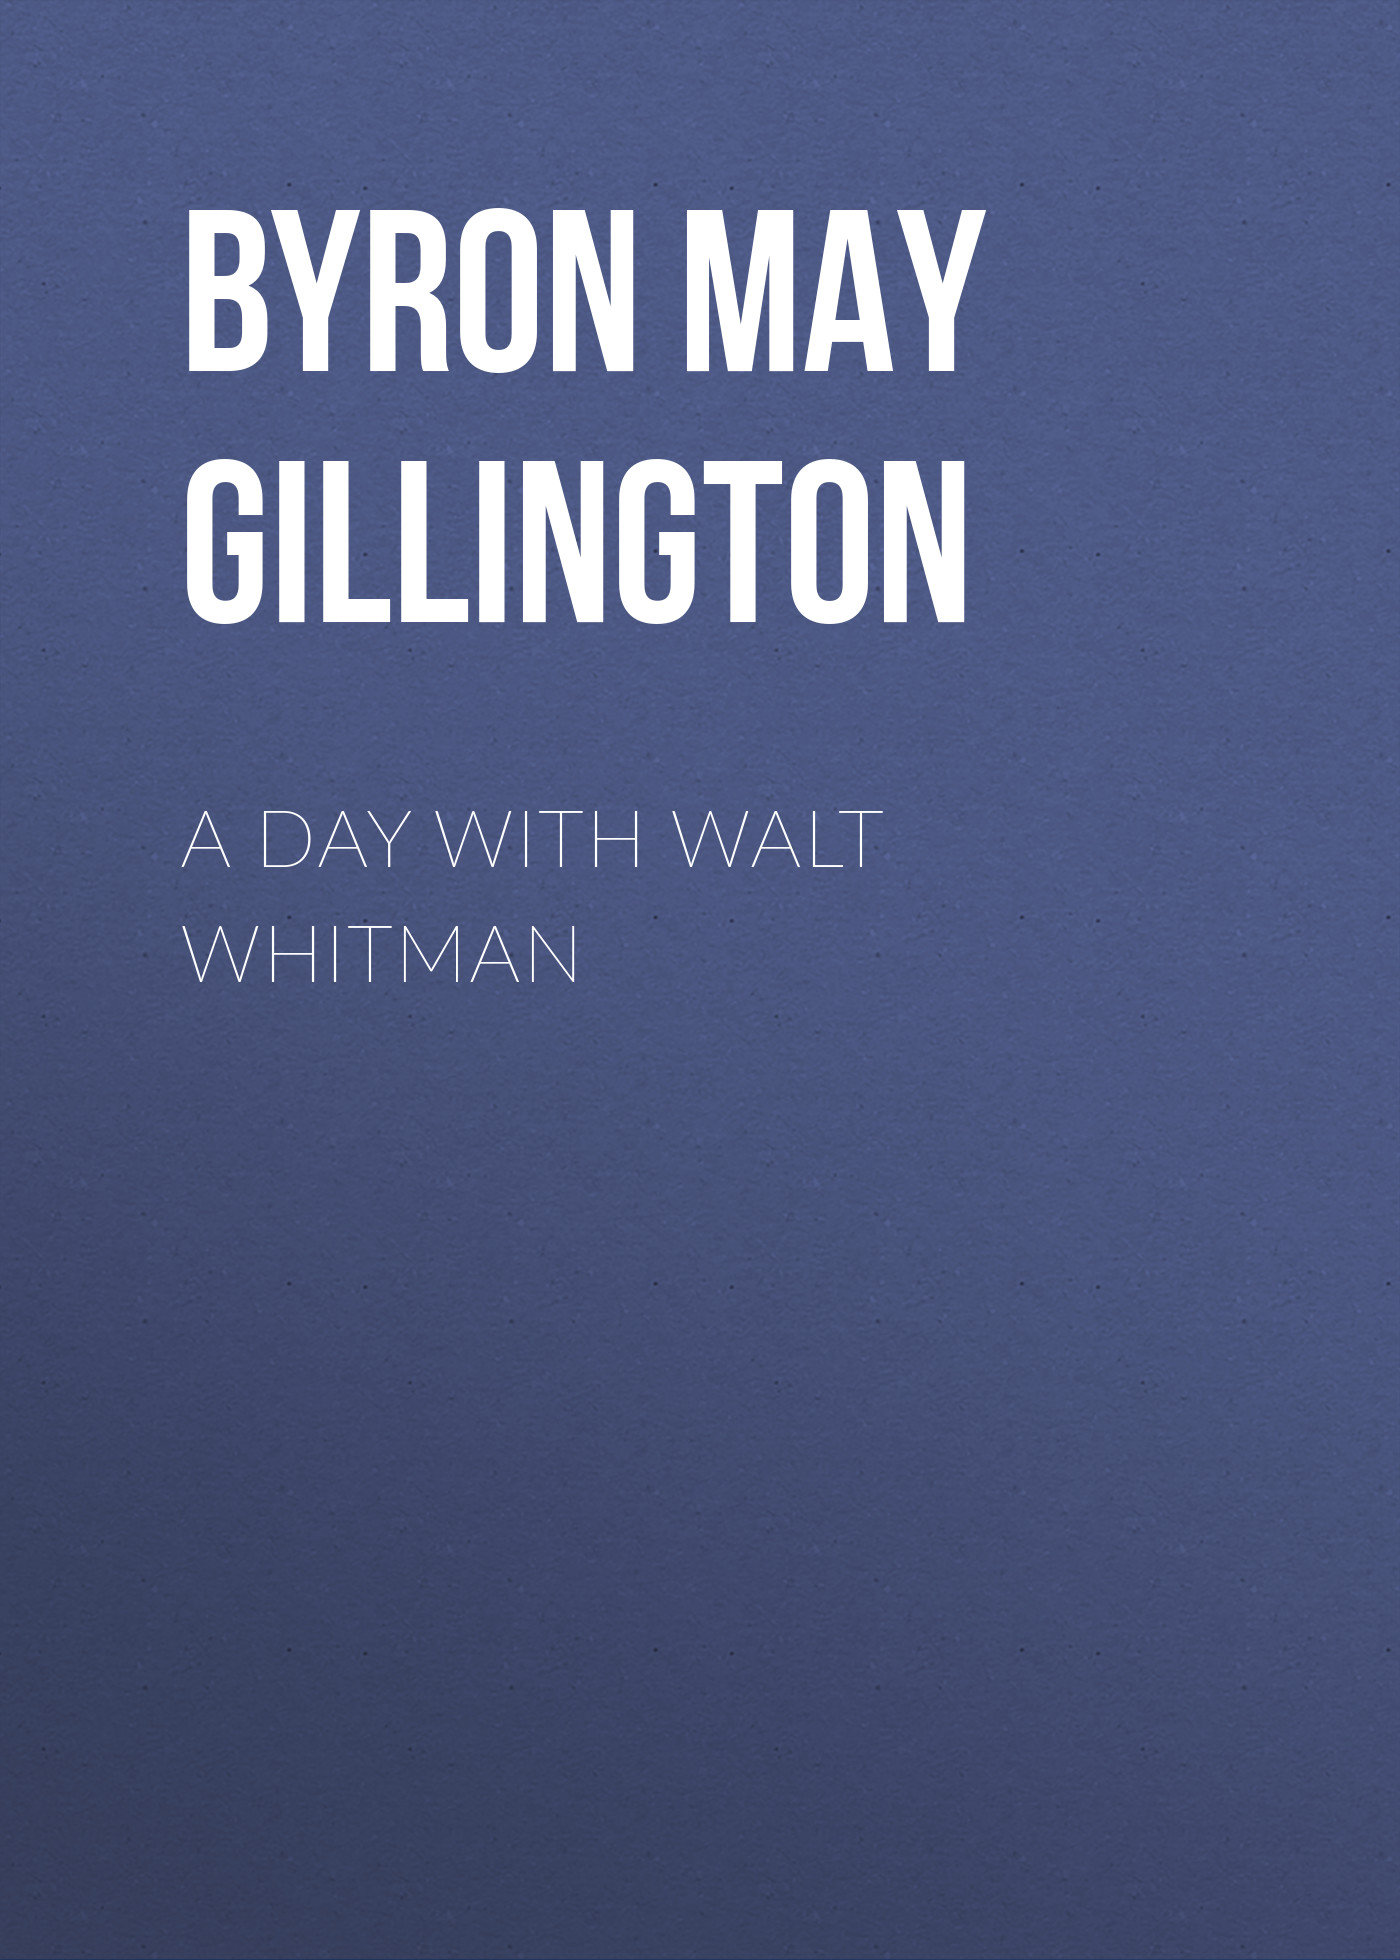 лучшая цена Byron May Clarissa Gillington A Day with Walt Whitman